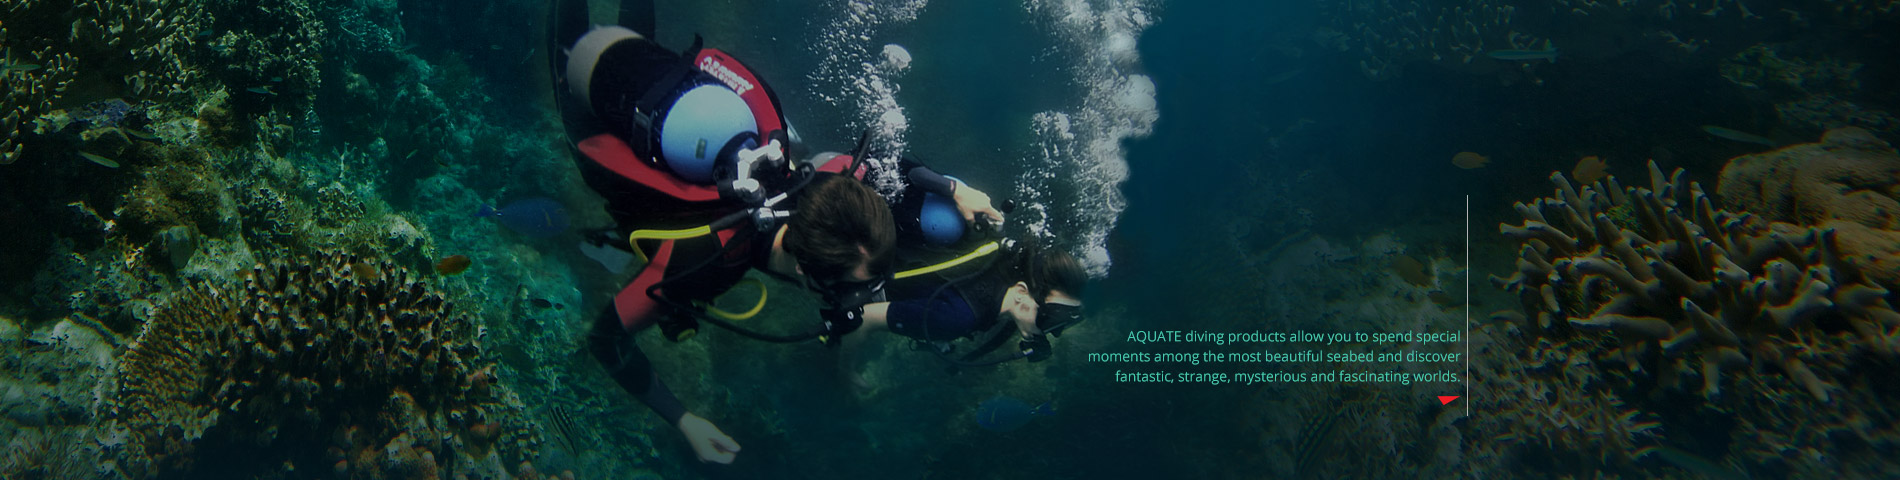 AQUATEC Innovative products for diving sport